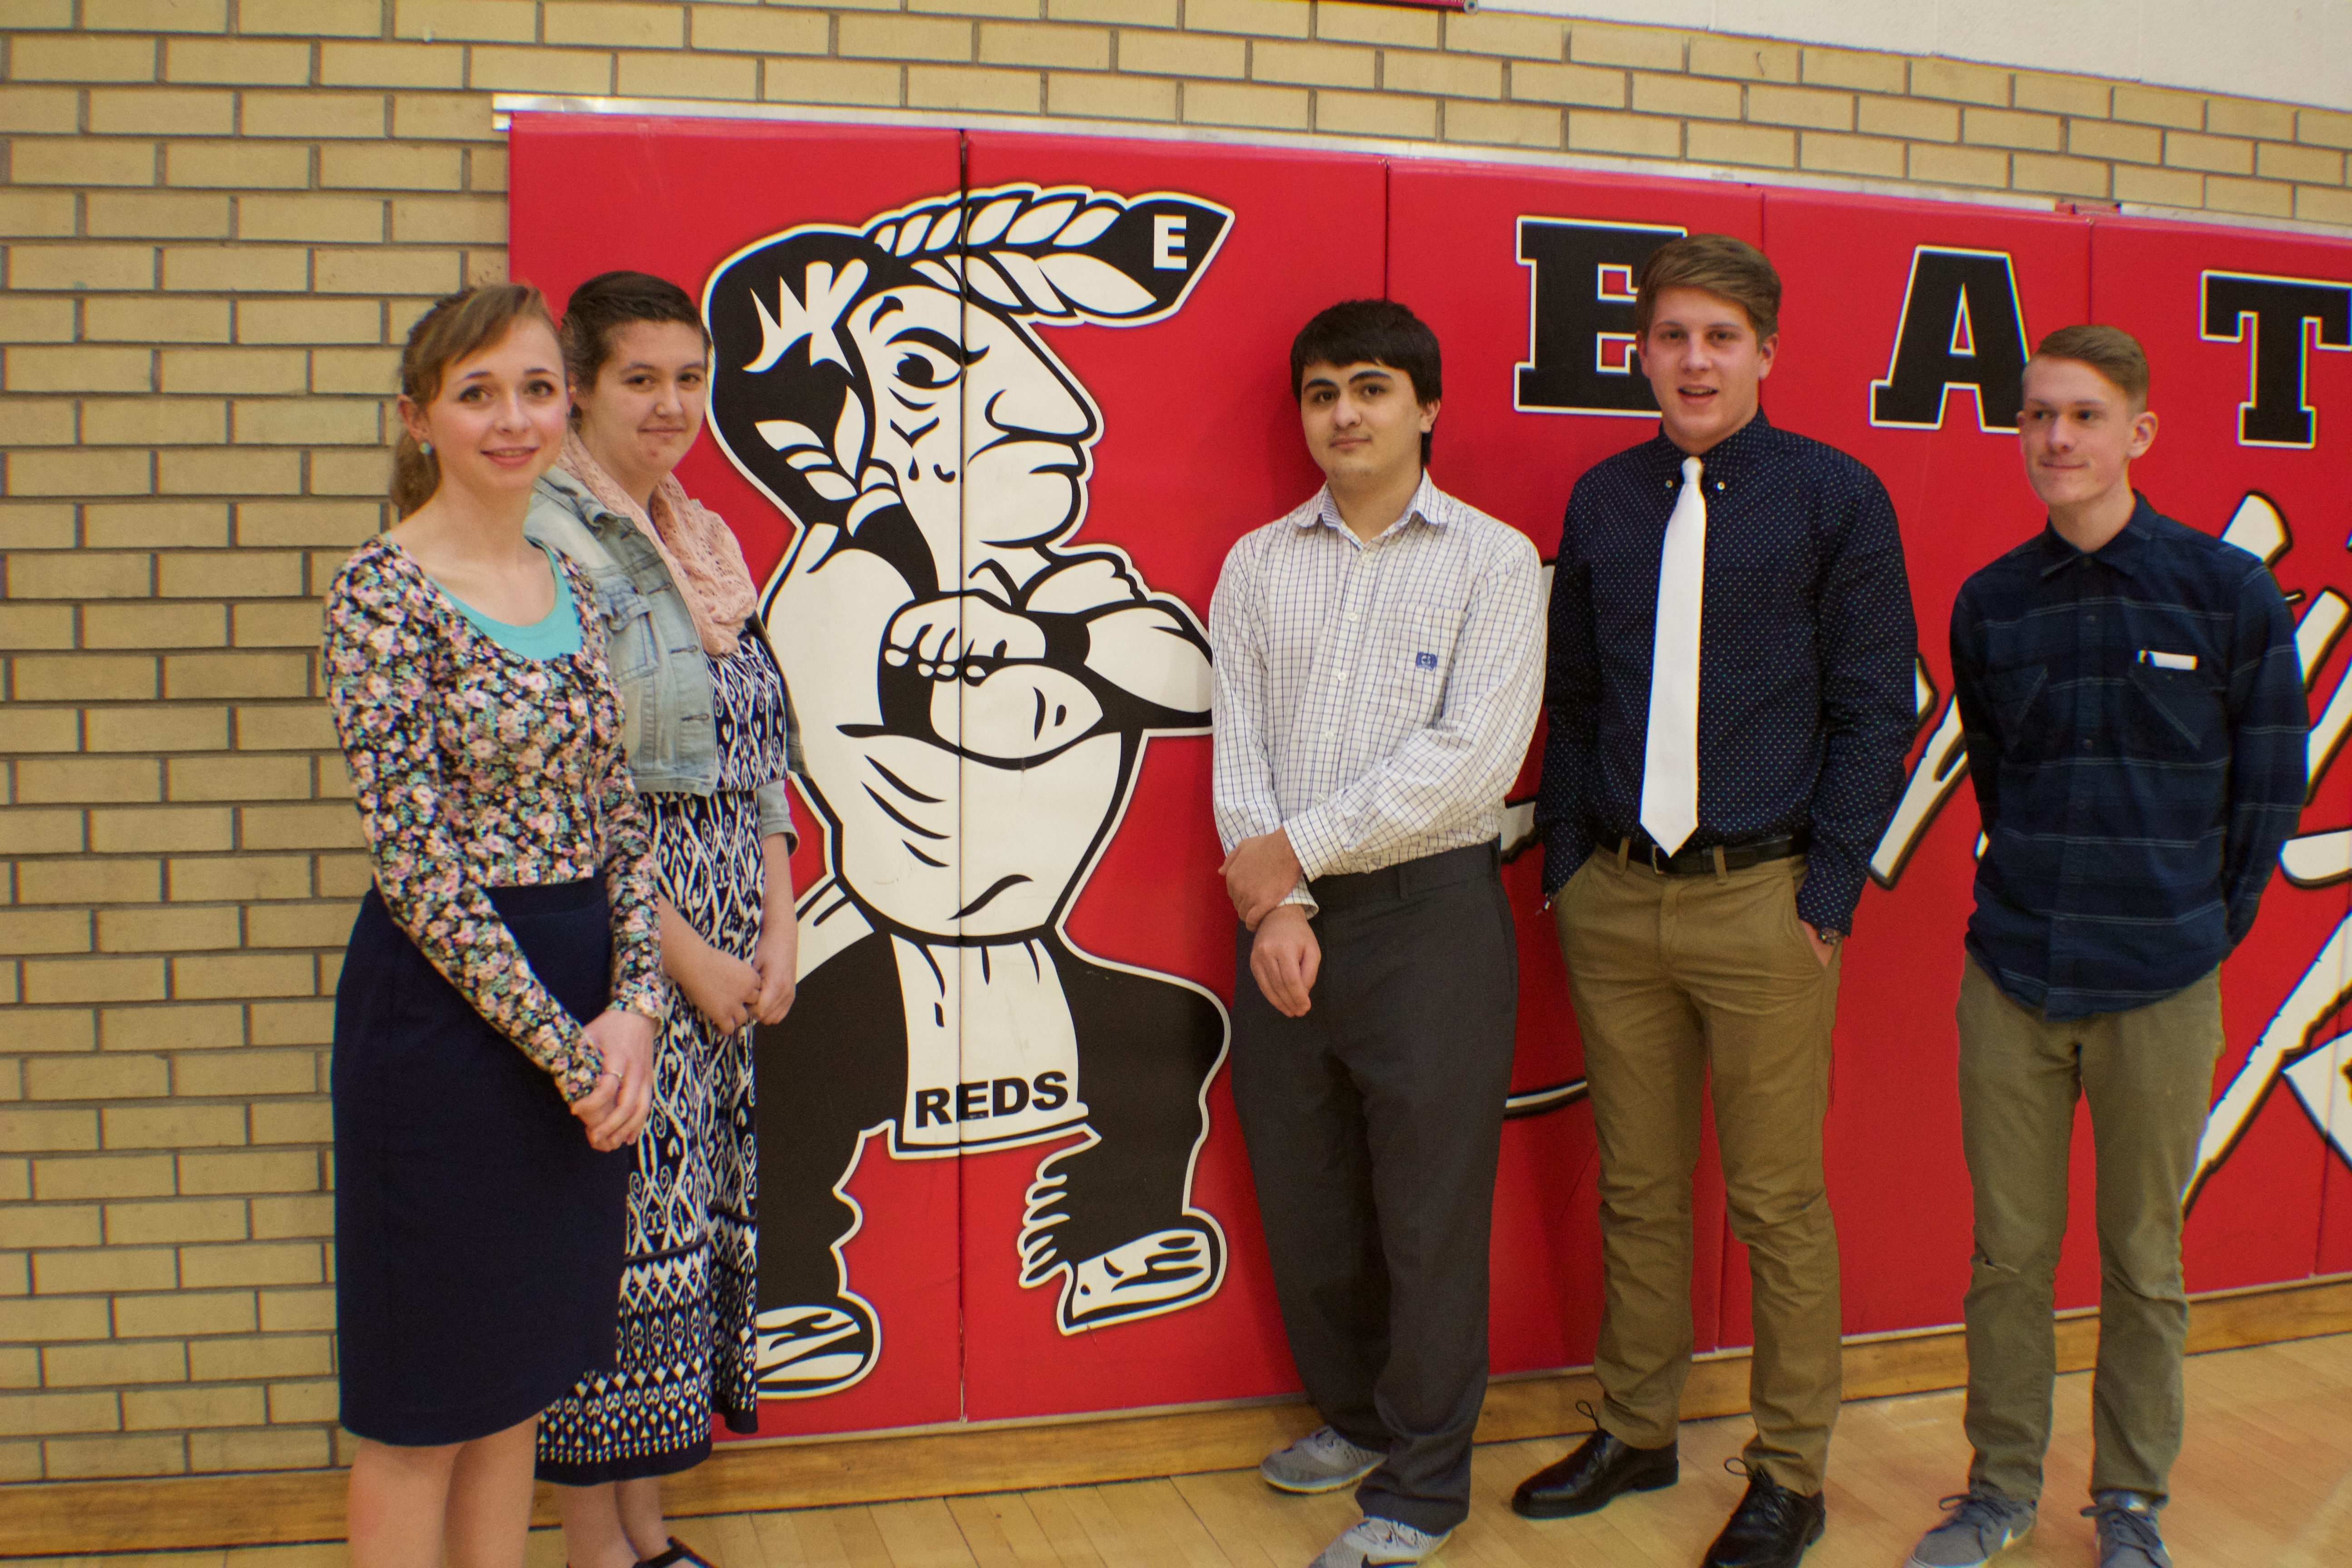 Red Ink members stand next to the mascot (left to right, Karalee Kothe(16), Sarah Jakel (17), Isaiah Cordova (17), Devan McKenney (17), and Cameron Moser (17)